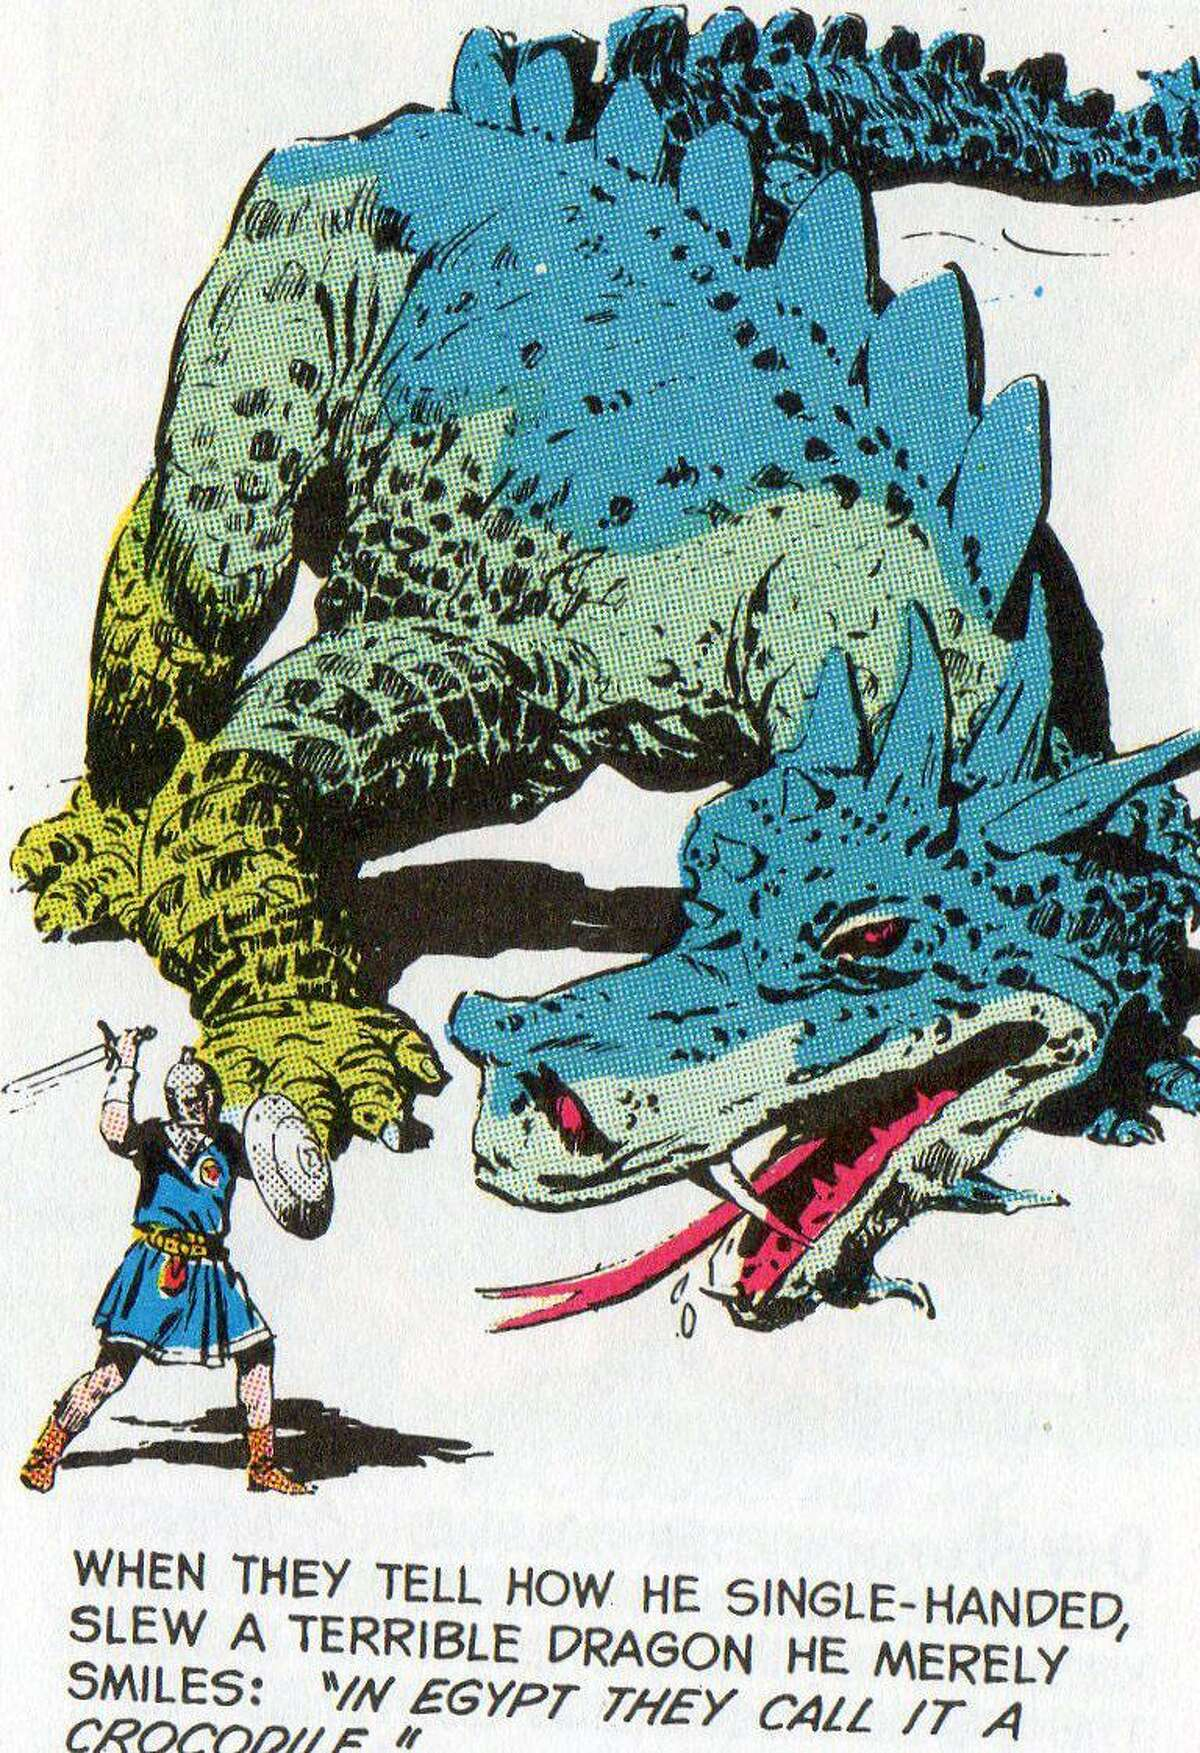 Valiant faces the dragon, as depicted by John Cullen Murphy.